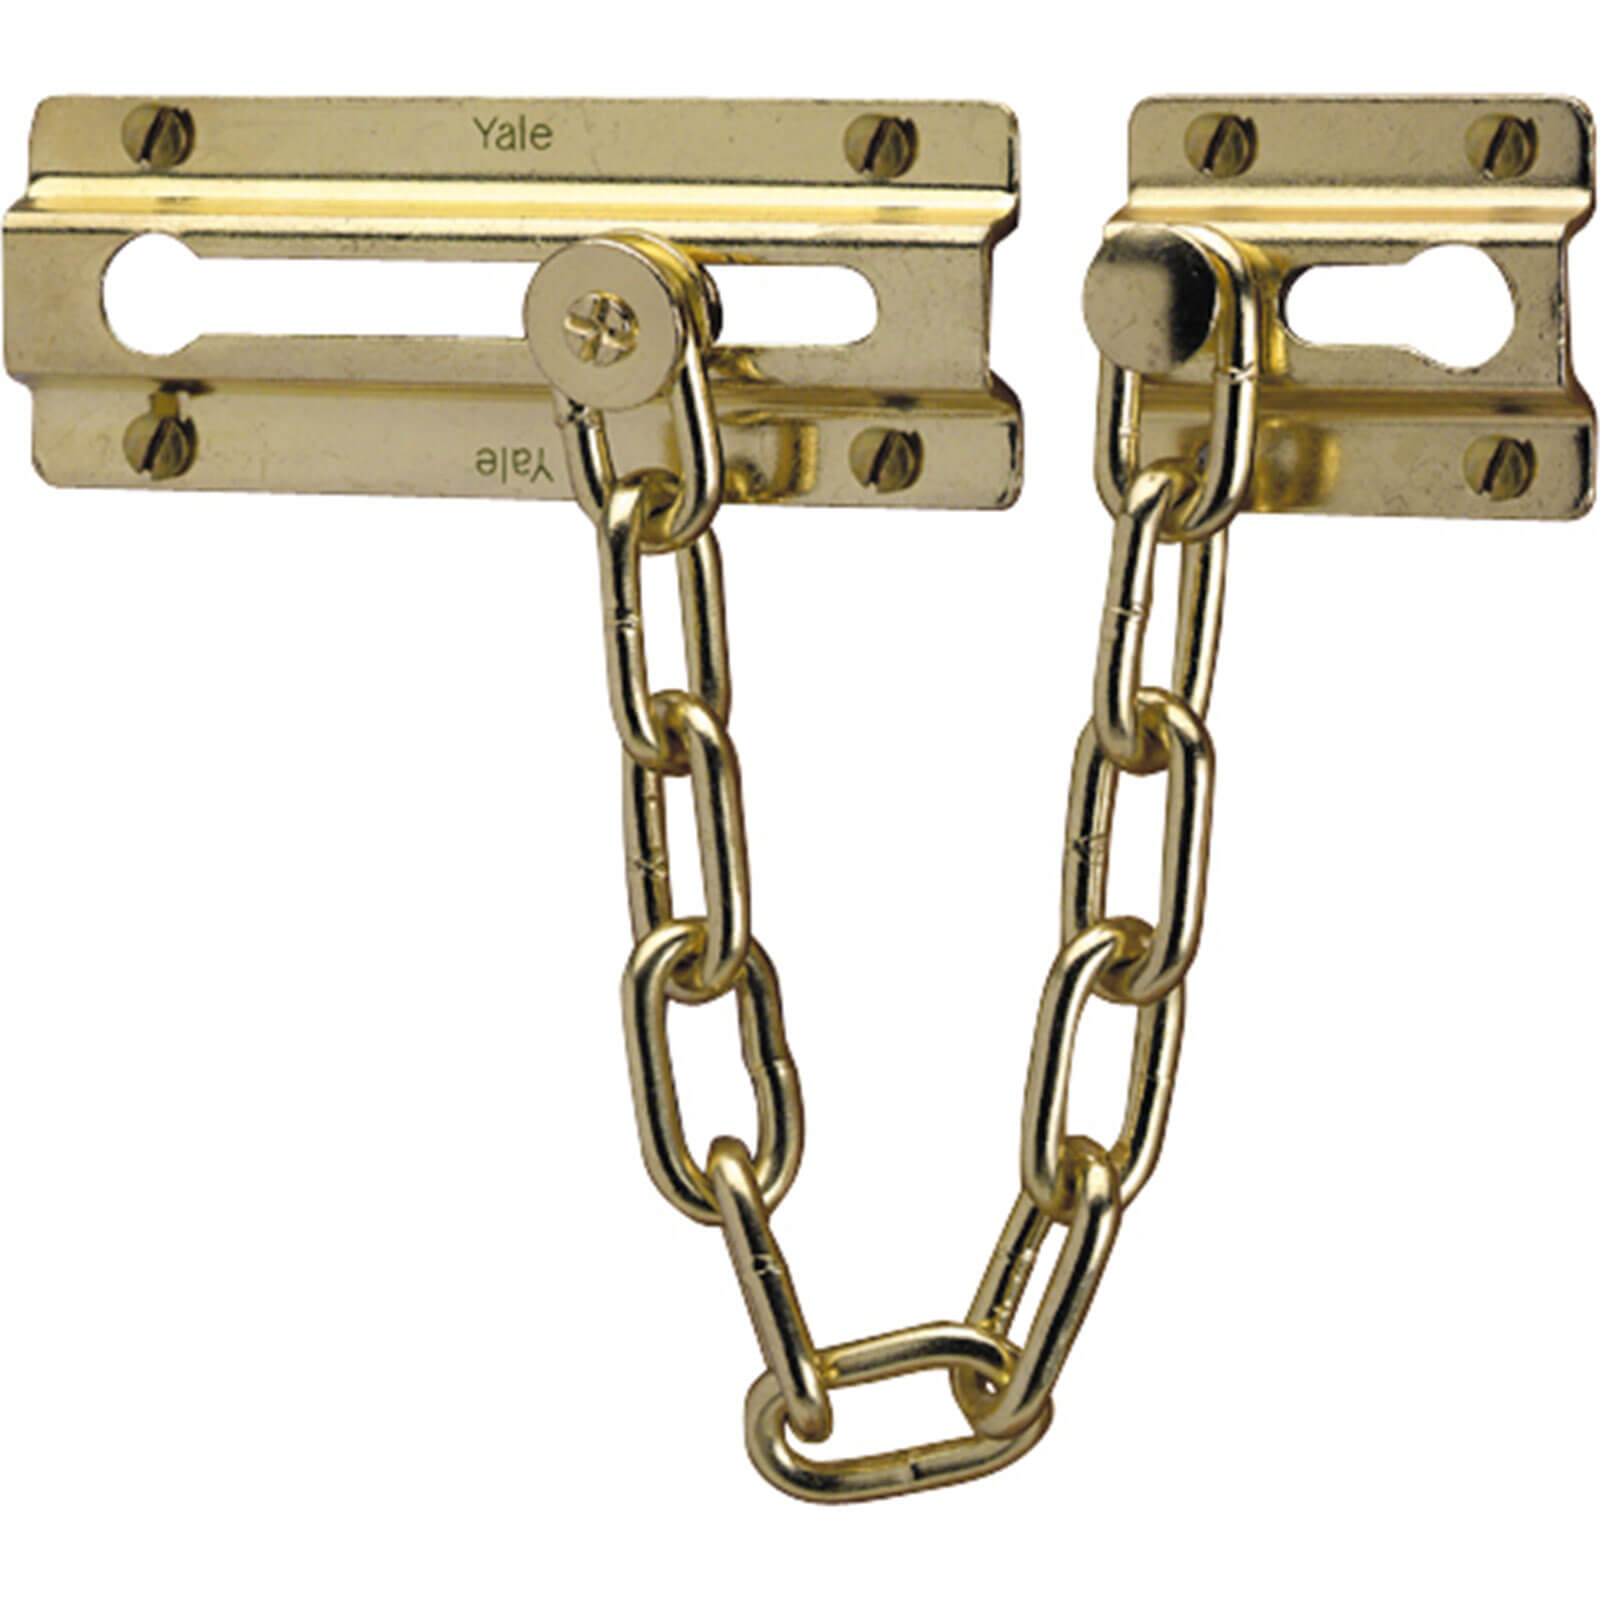 Image of Yale P1037 Door Chain Brass Finish